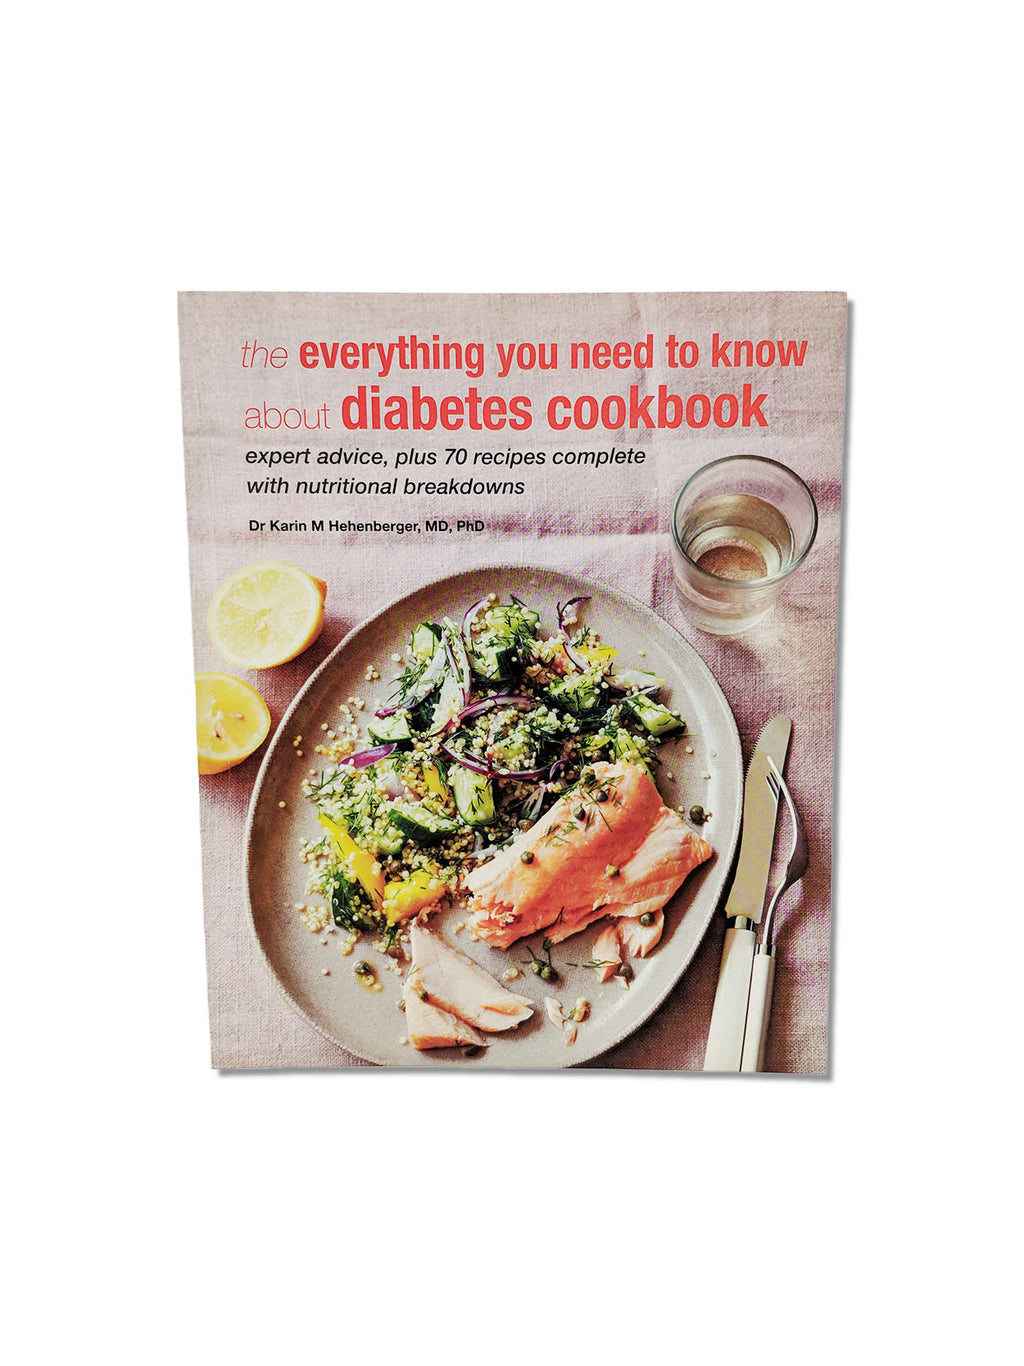 The Everything You Need To Know About Diabetes Cookbook : Expert Advice, Plus 70 Recipes Complete with Nutritional Breakdowns